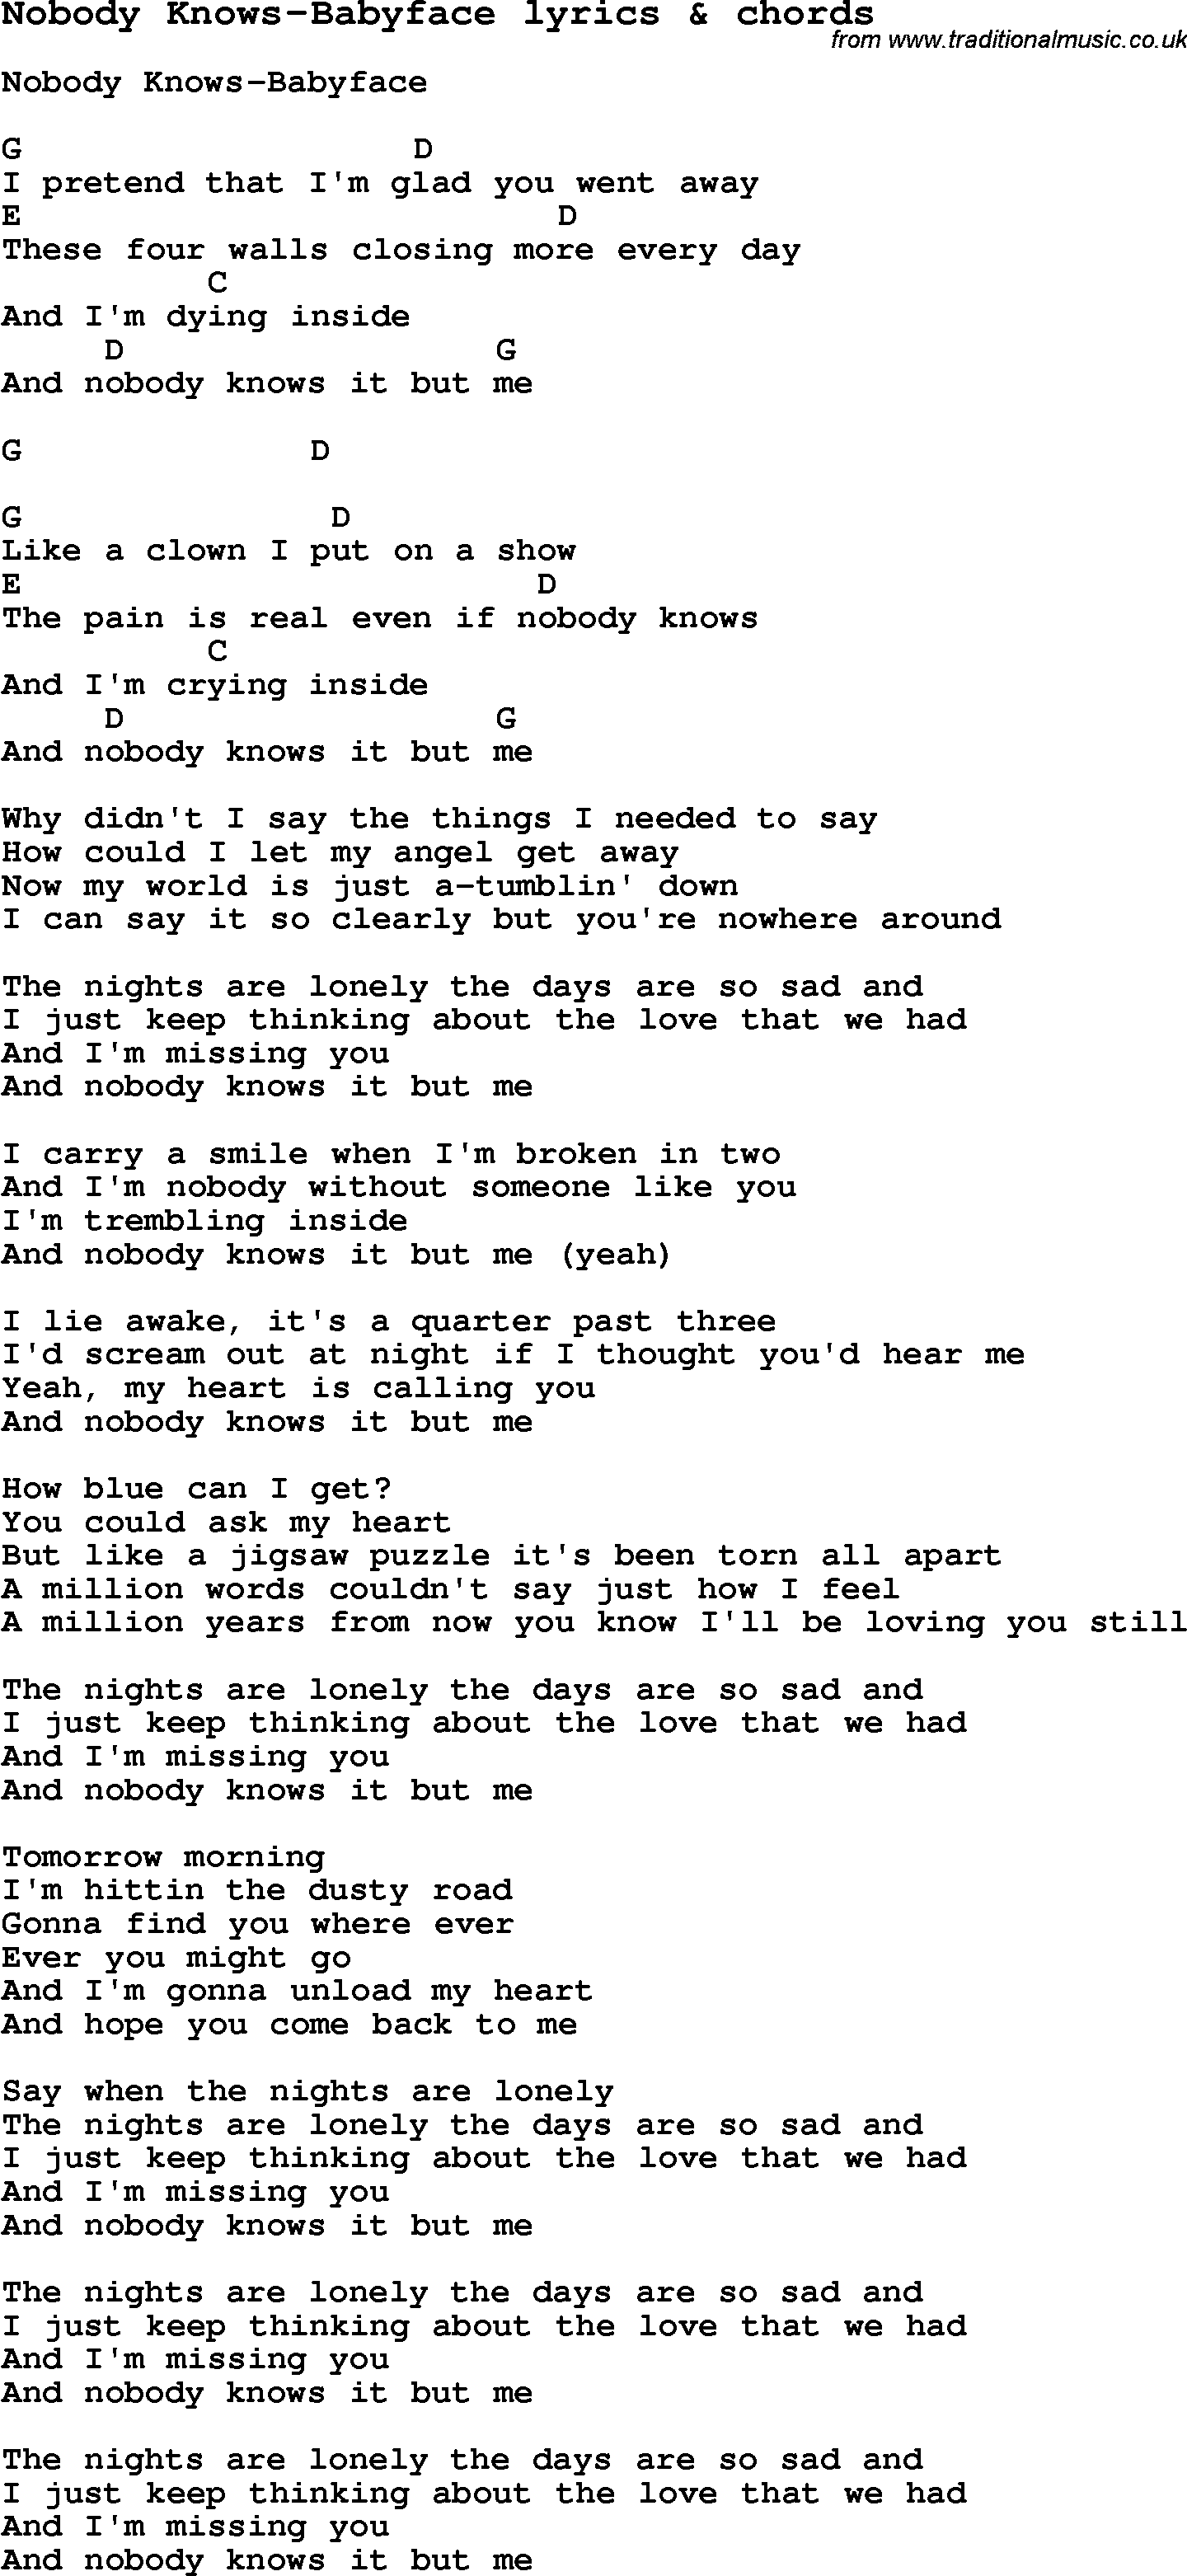 Love Song Lyrics For Nobody Knows Babyface With Chords For Ukulele